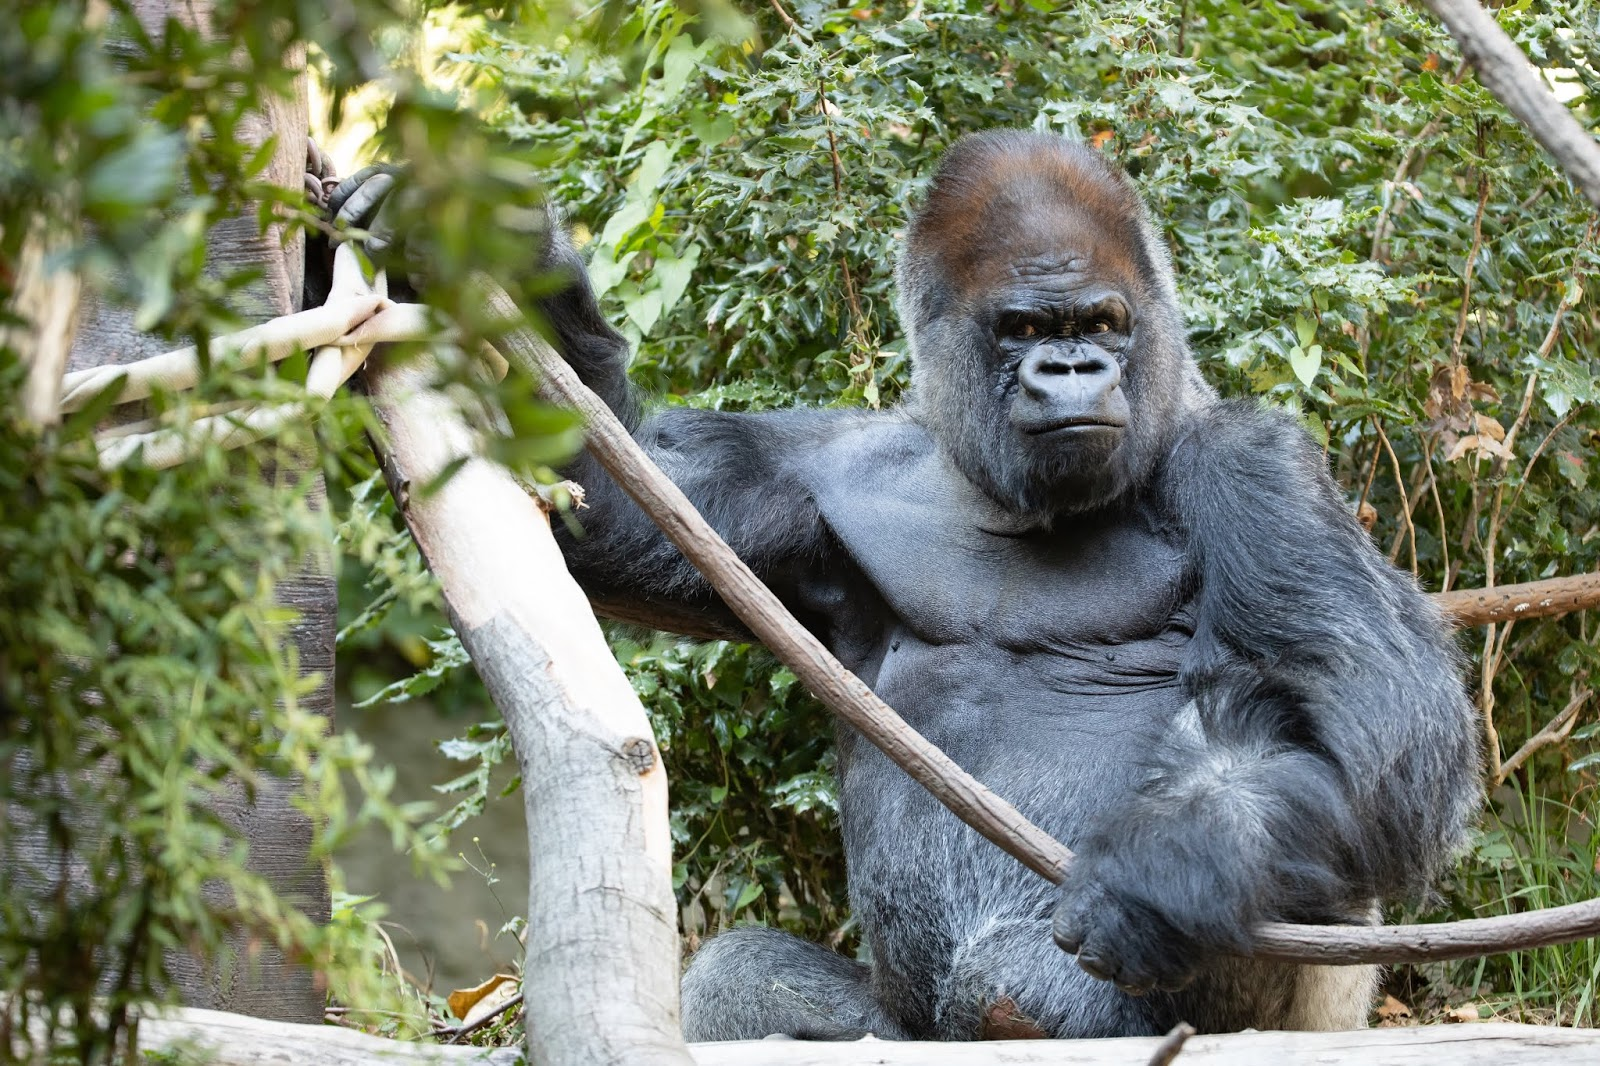 Silverback Gorilla Vip Is Back After Nearly A Year Of